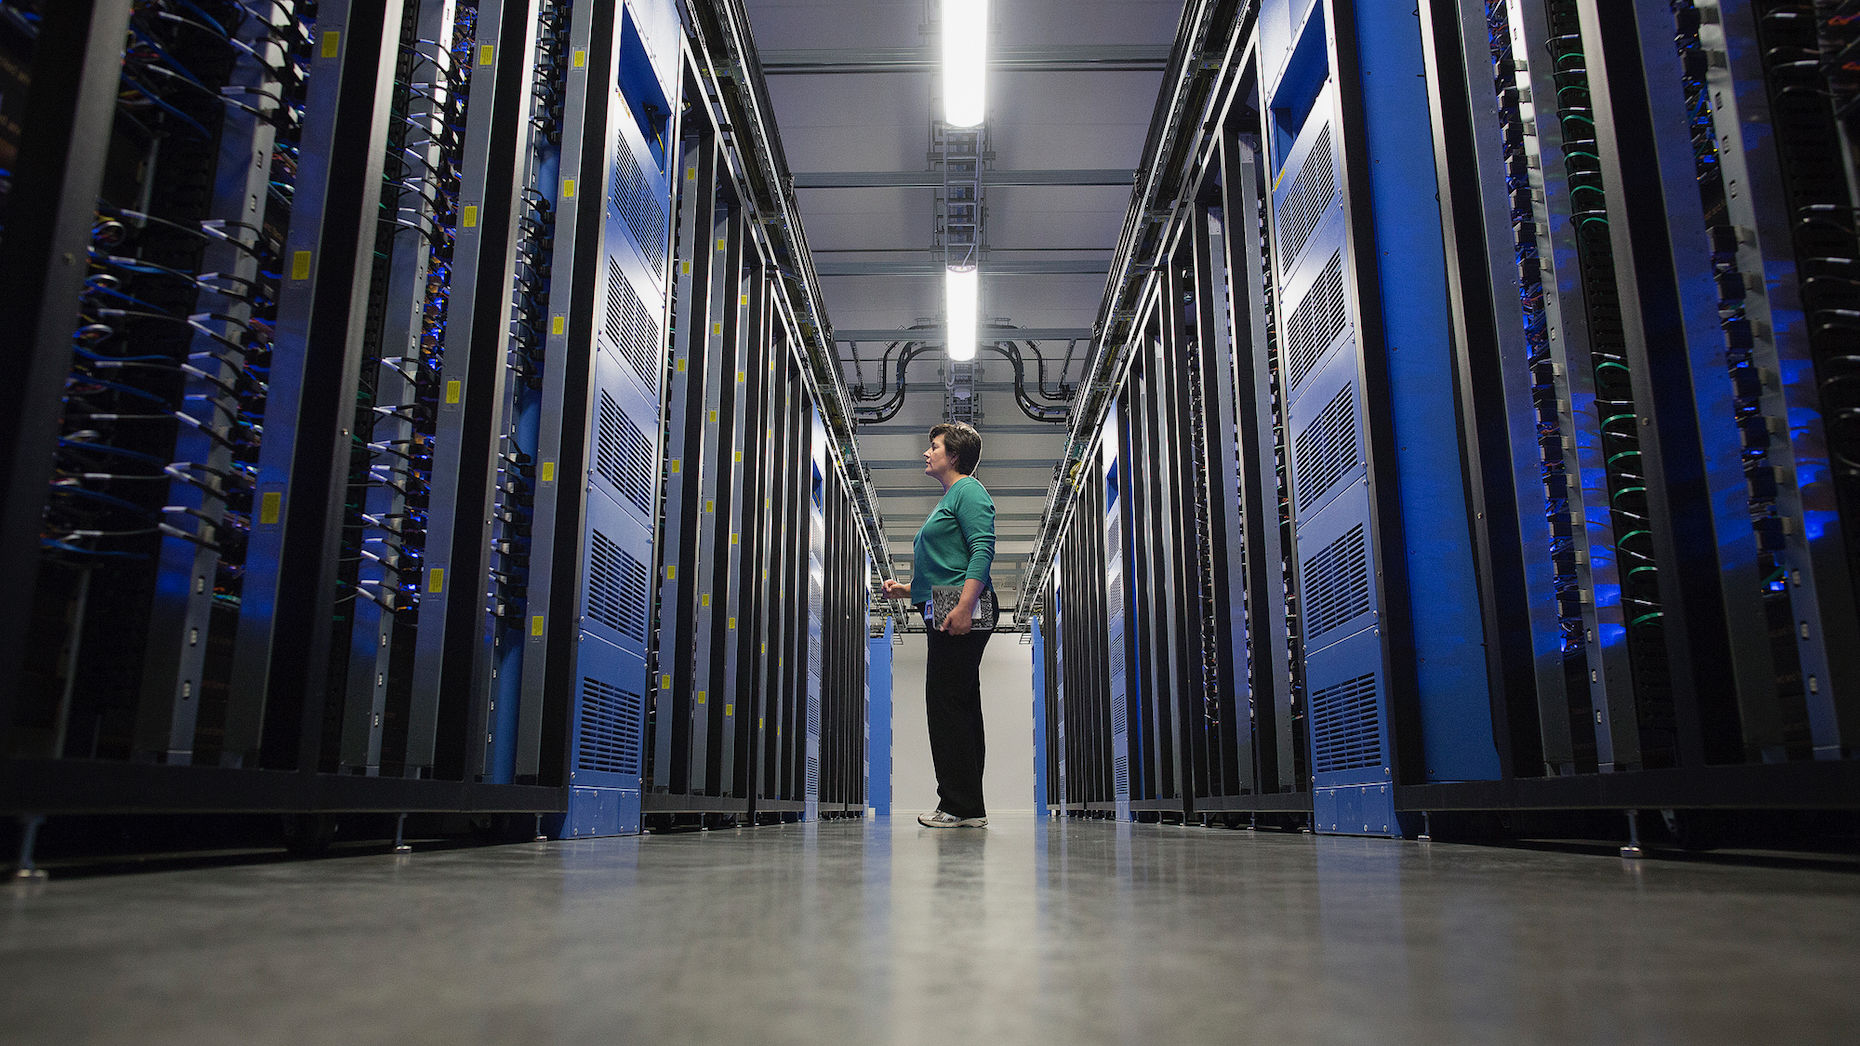 A Facebook data center in Sweden. Photo by Bloomberg